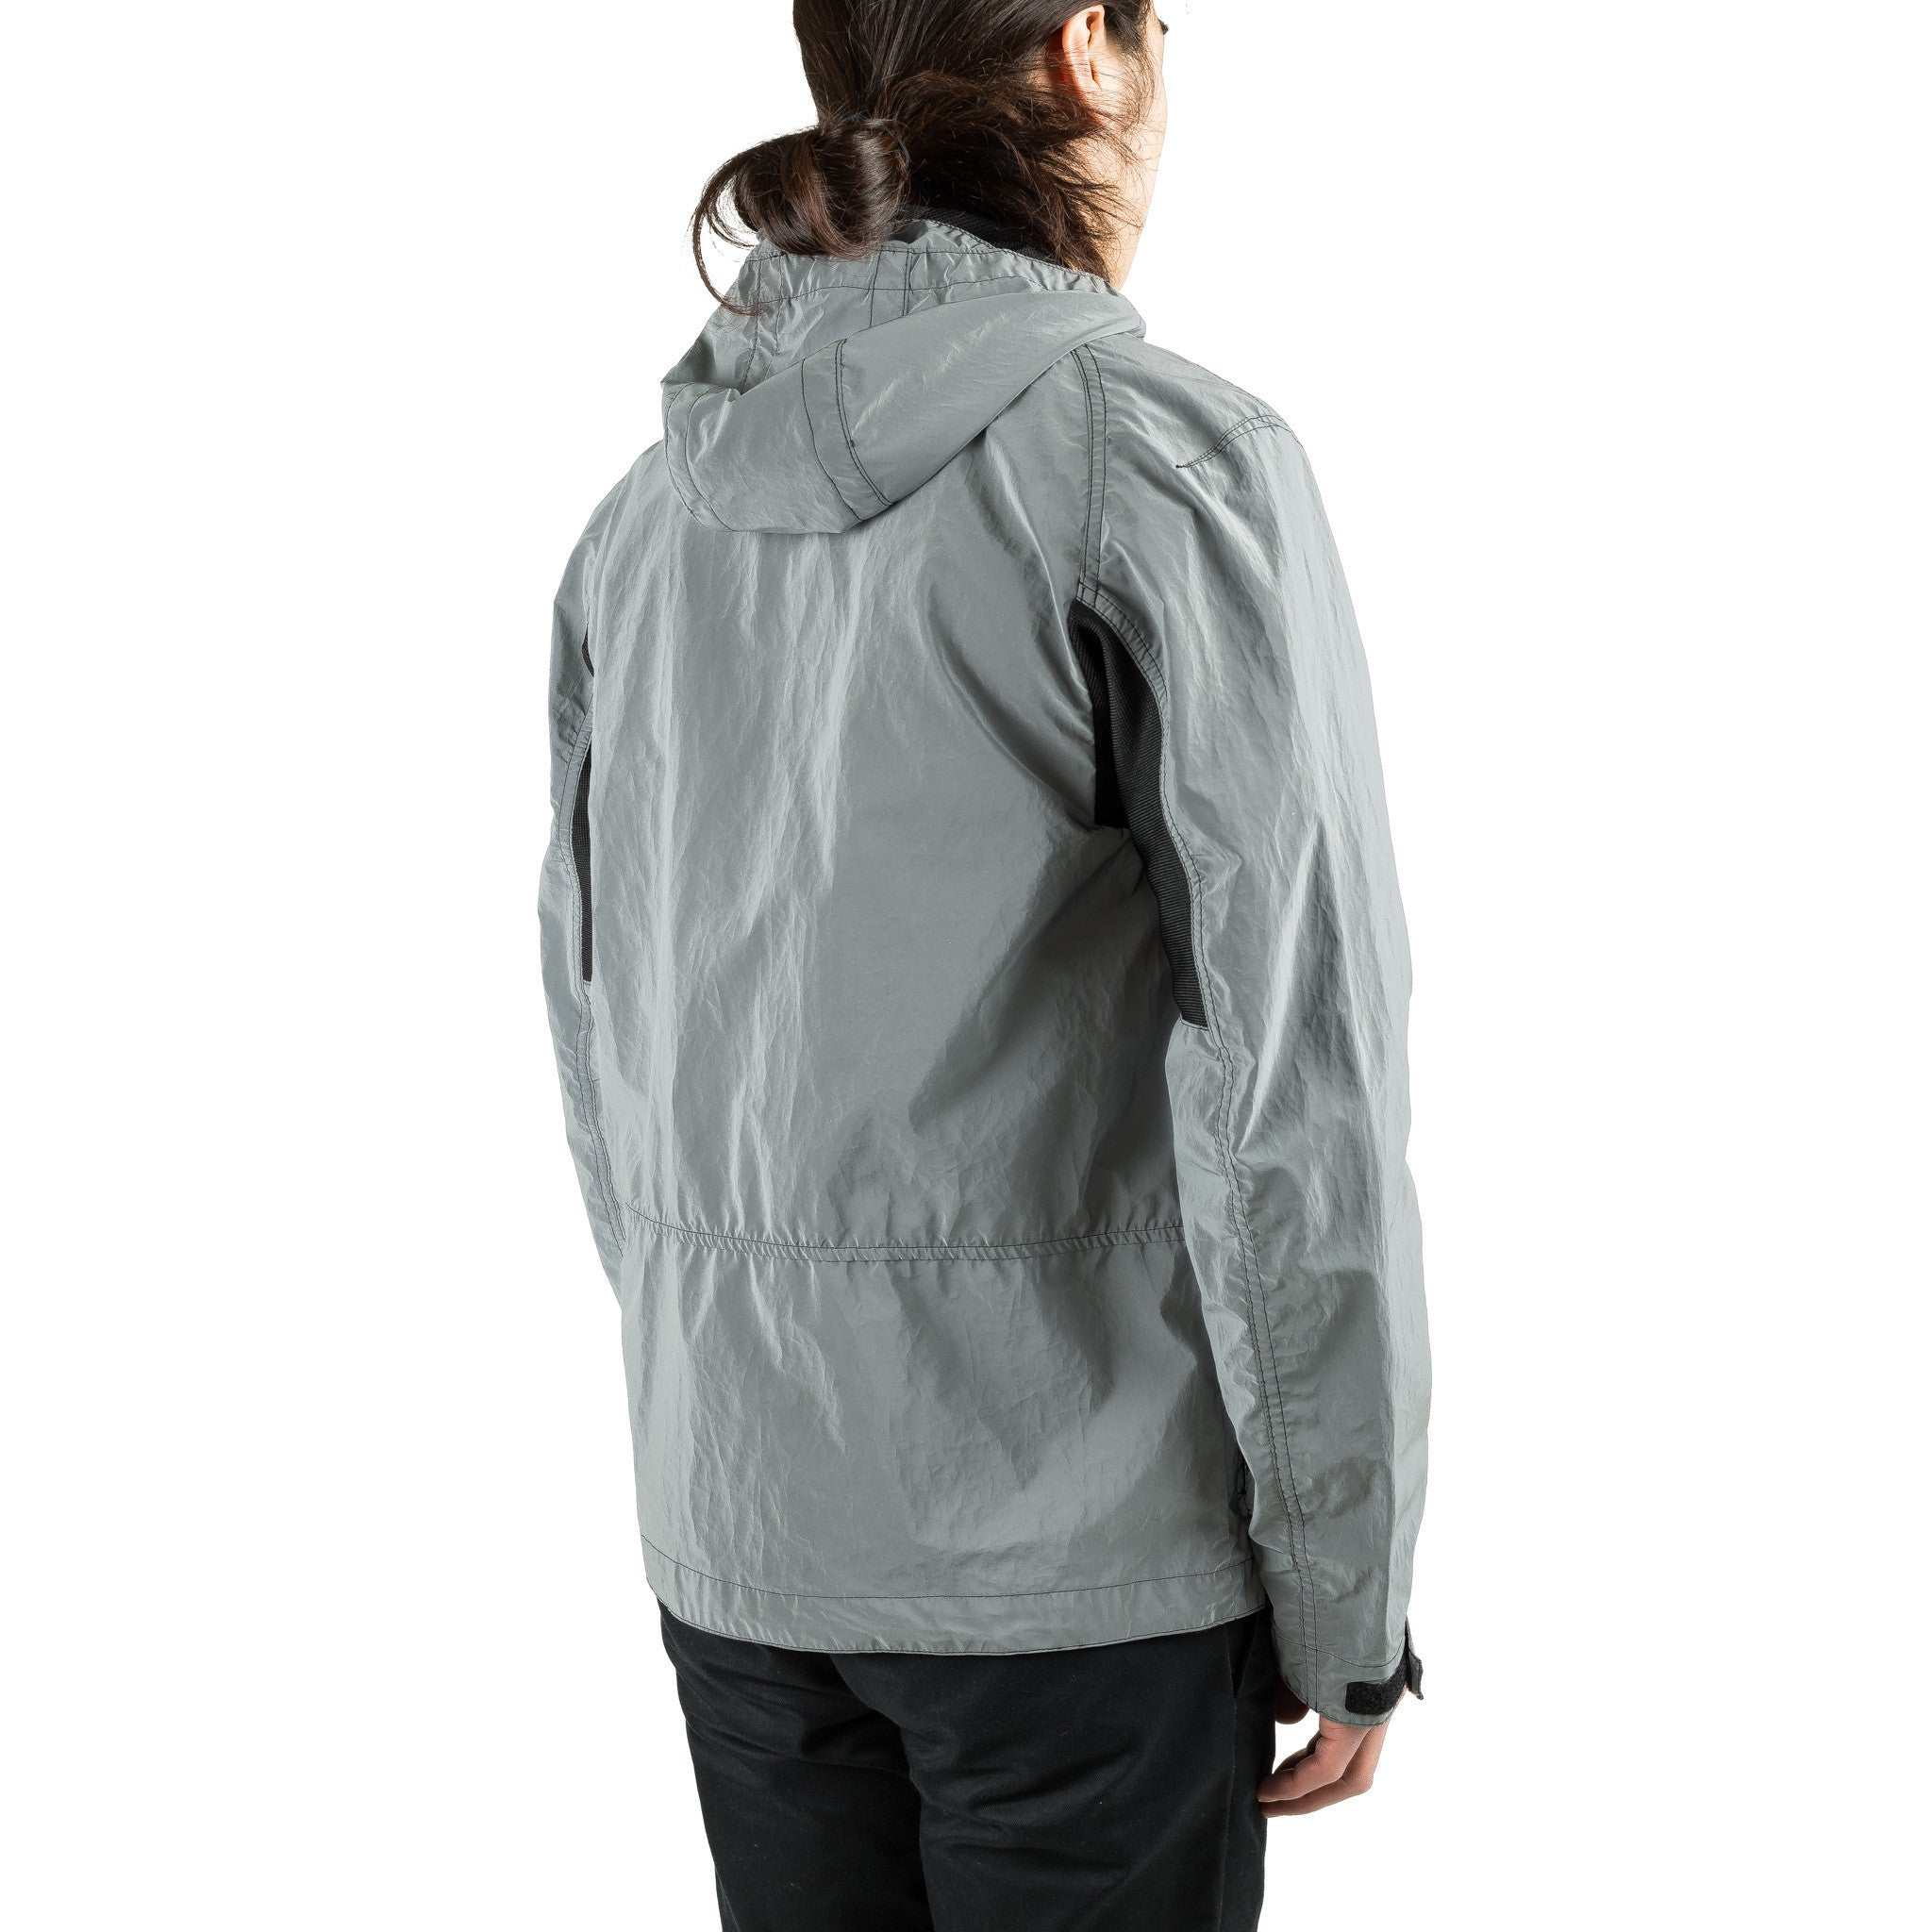 Garment Dyed Plated Reflective Jacket 6615453S6